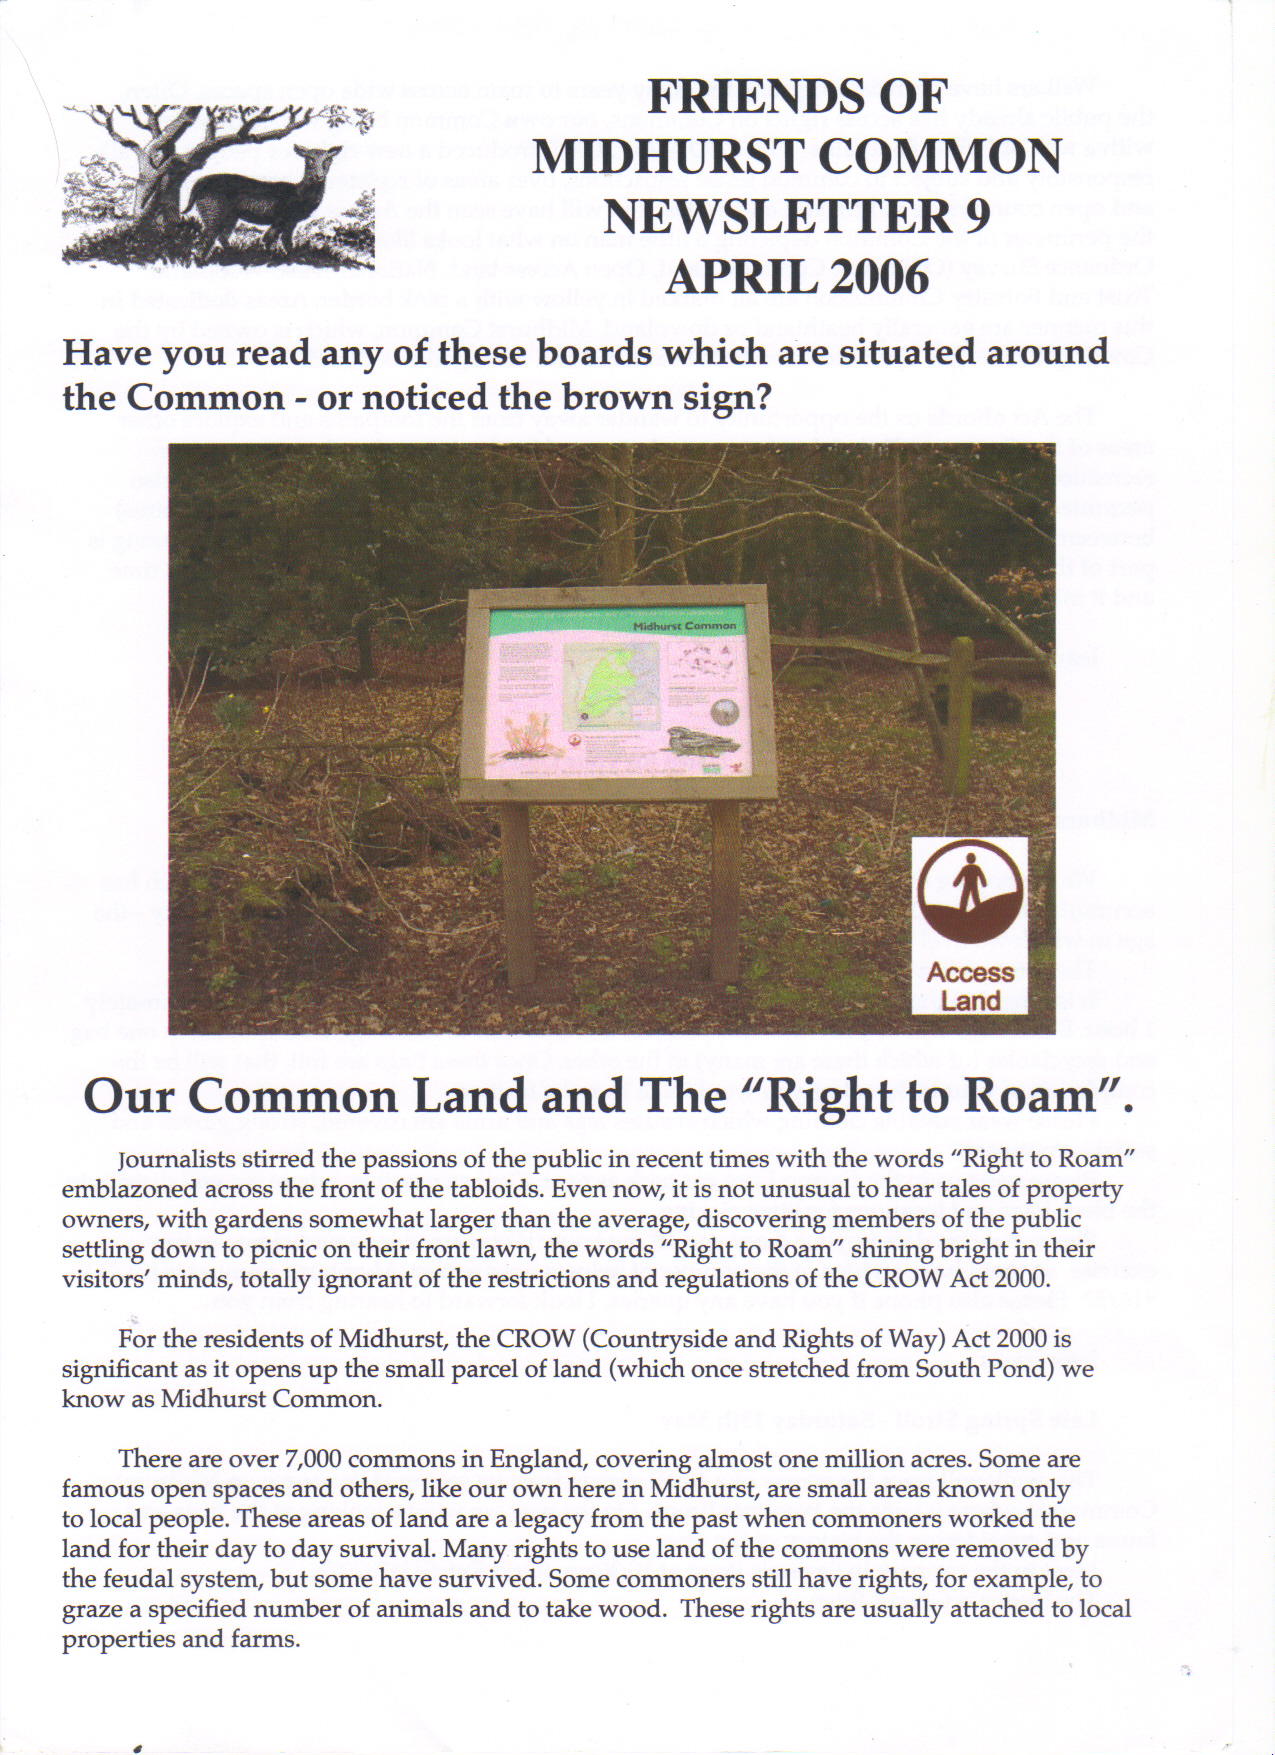 Newsletter no 9 part 1 of 2 April 2006 - Our right to roam